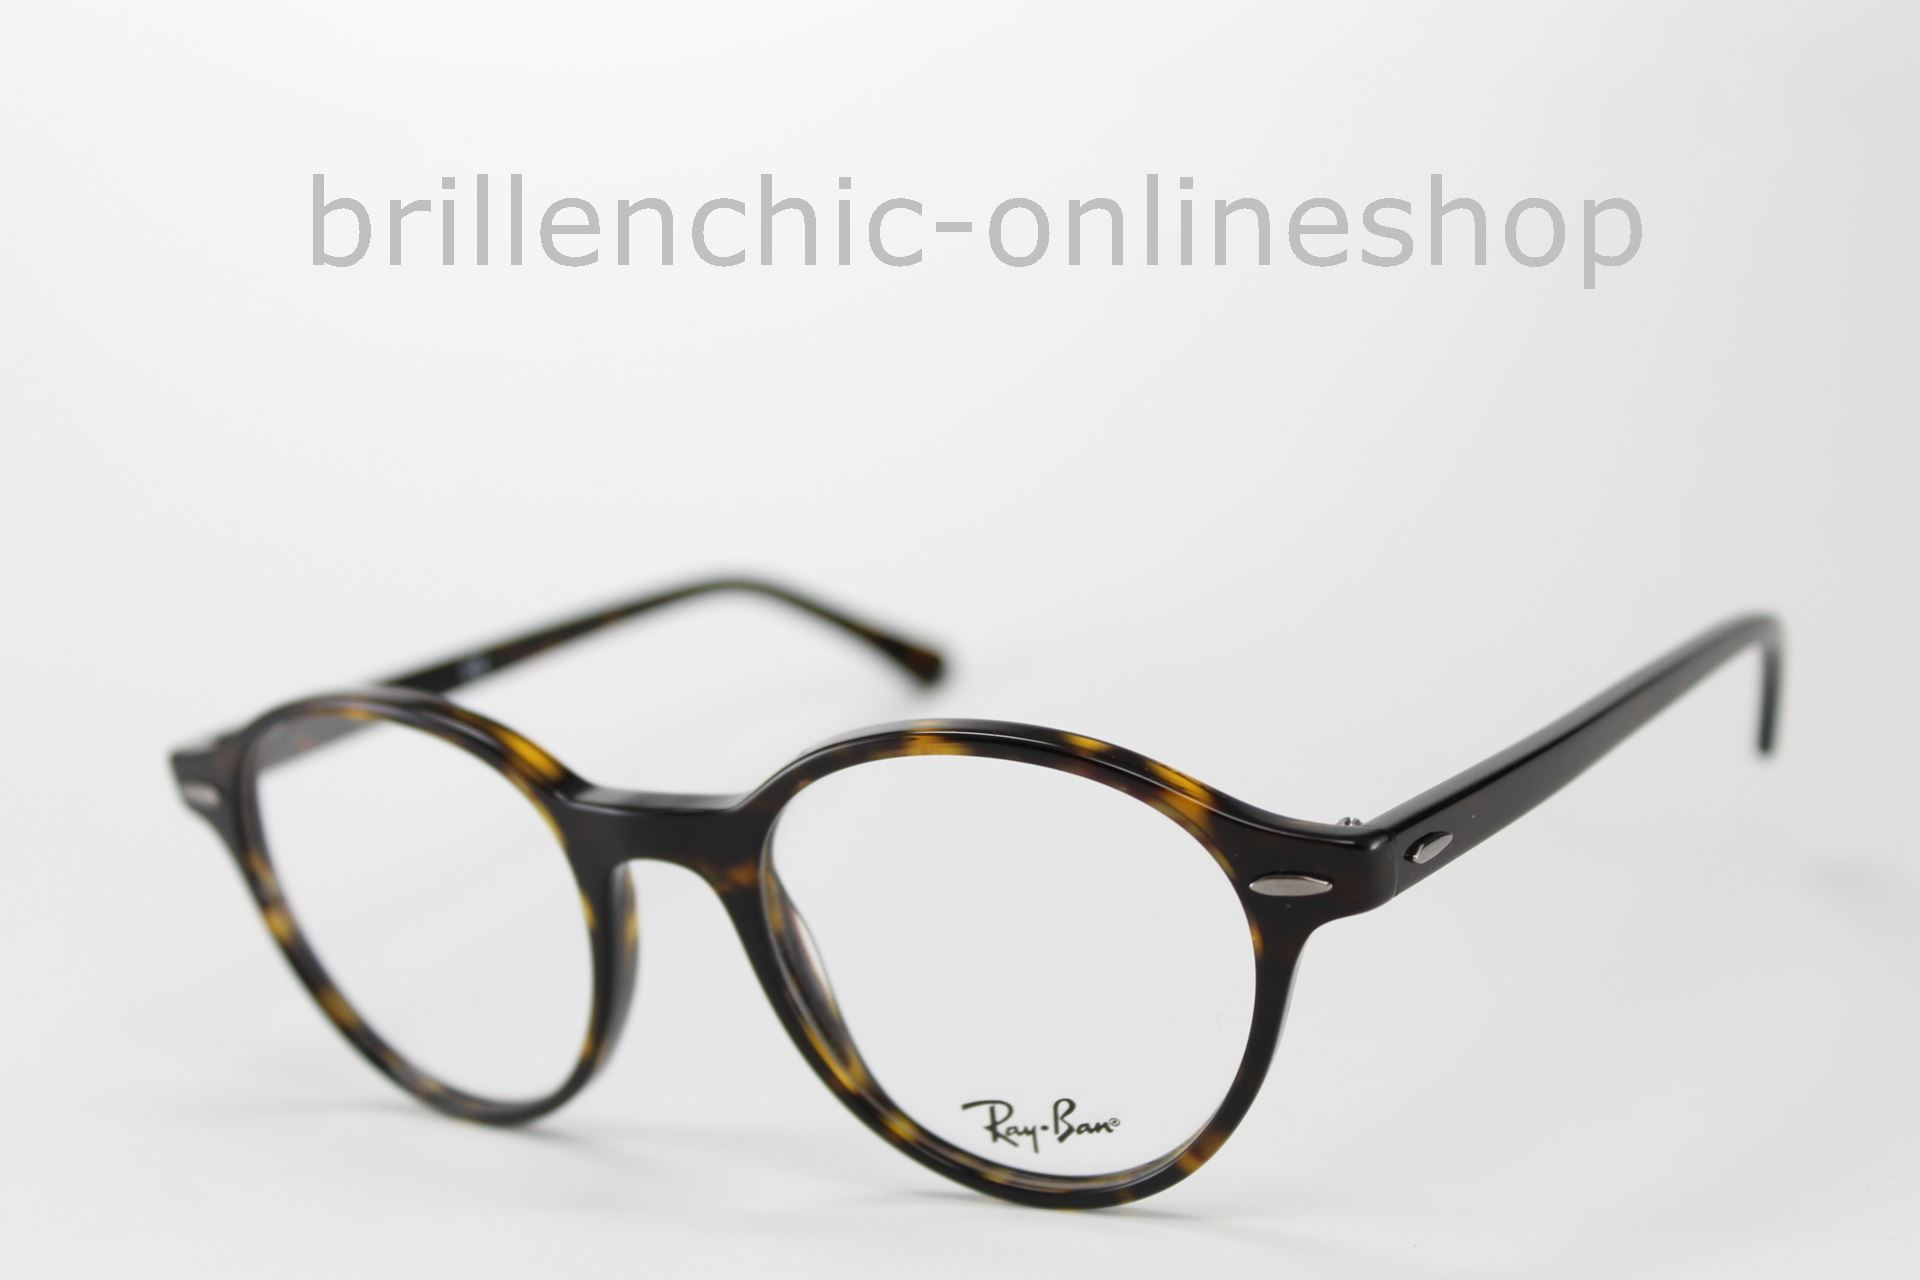 192415fc0ad Brillenchic-onlineshop in Berlin - Ray Ban RB 7118 2012 DEAN